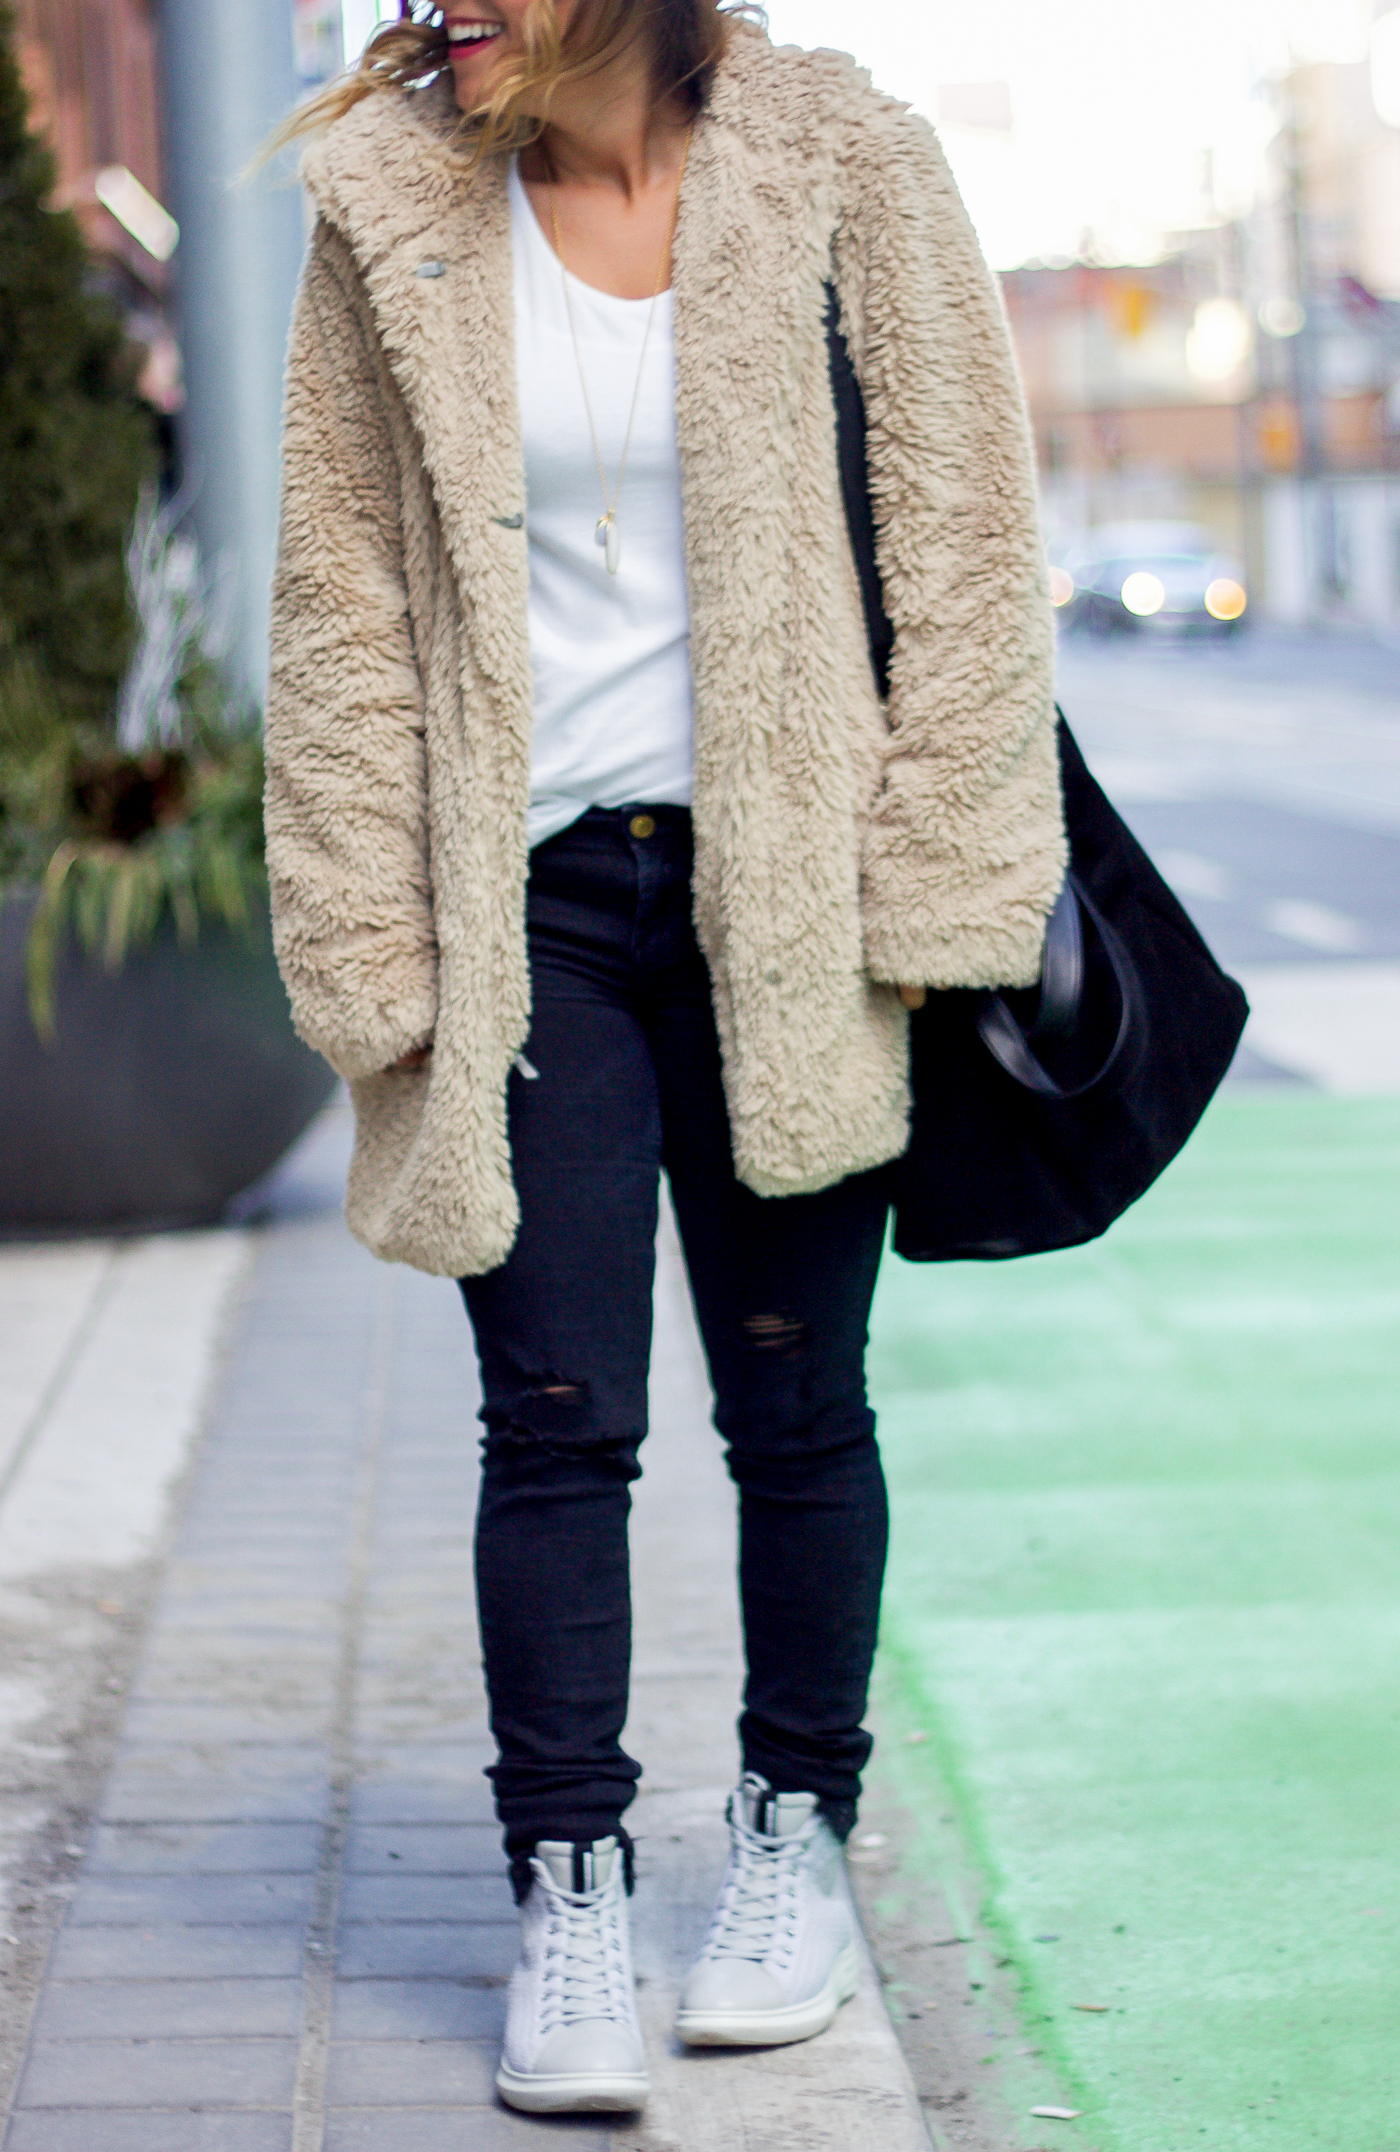 Toronto life and style blogger, Jackie Goldhar is wearing a cozy and chic winter outfit